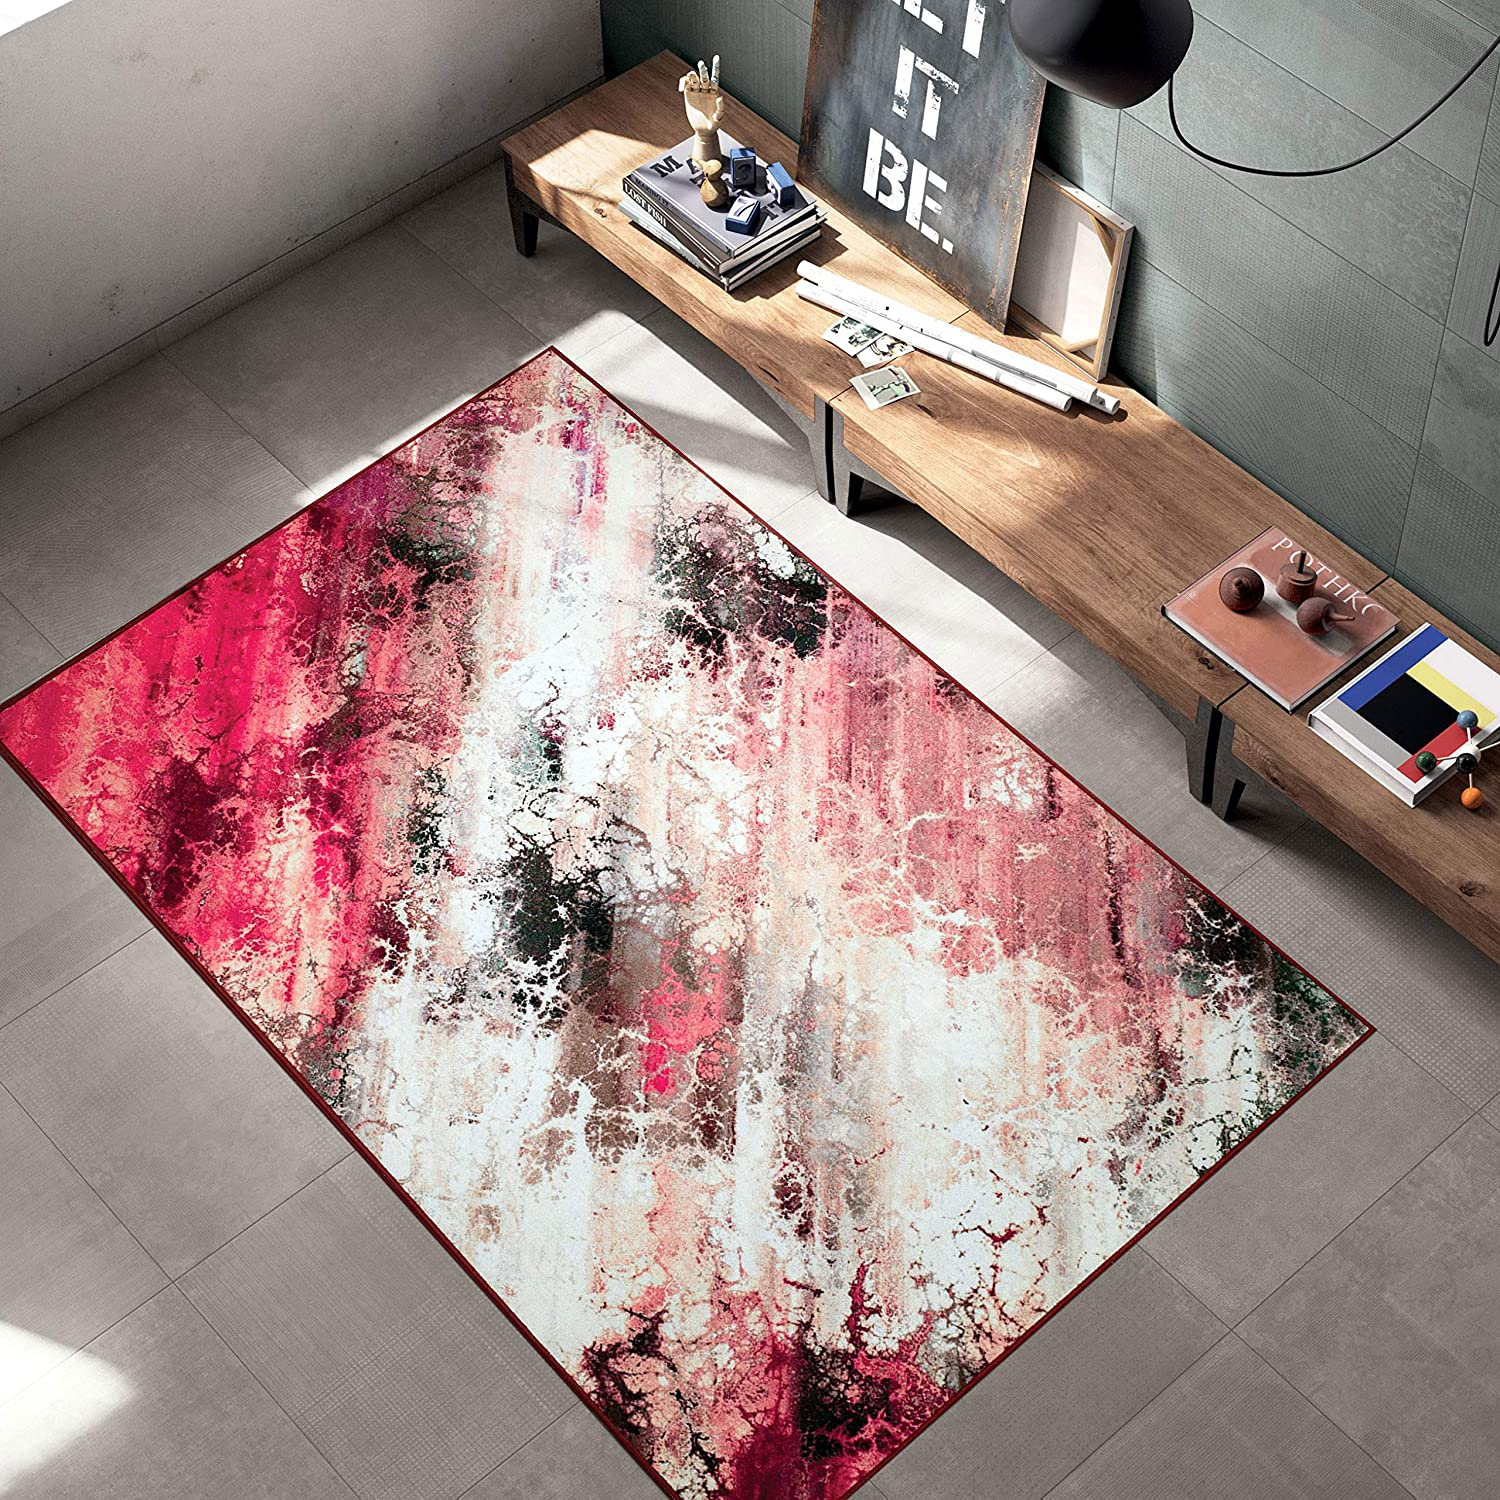 Woven Trends Contemporary and Modern Max 72% OFF Galaxy Abstra 047 Rug Online limited product Area